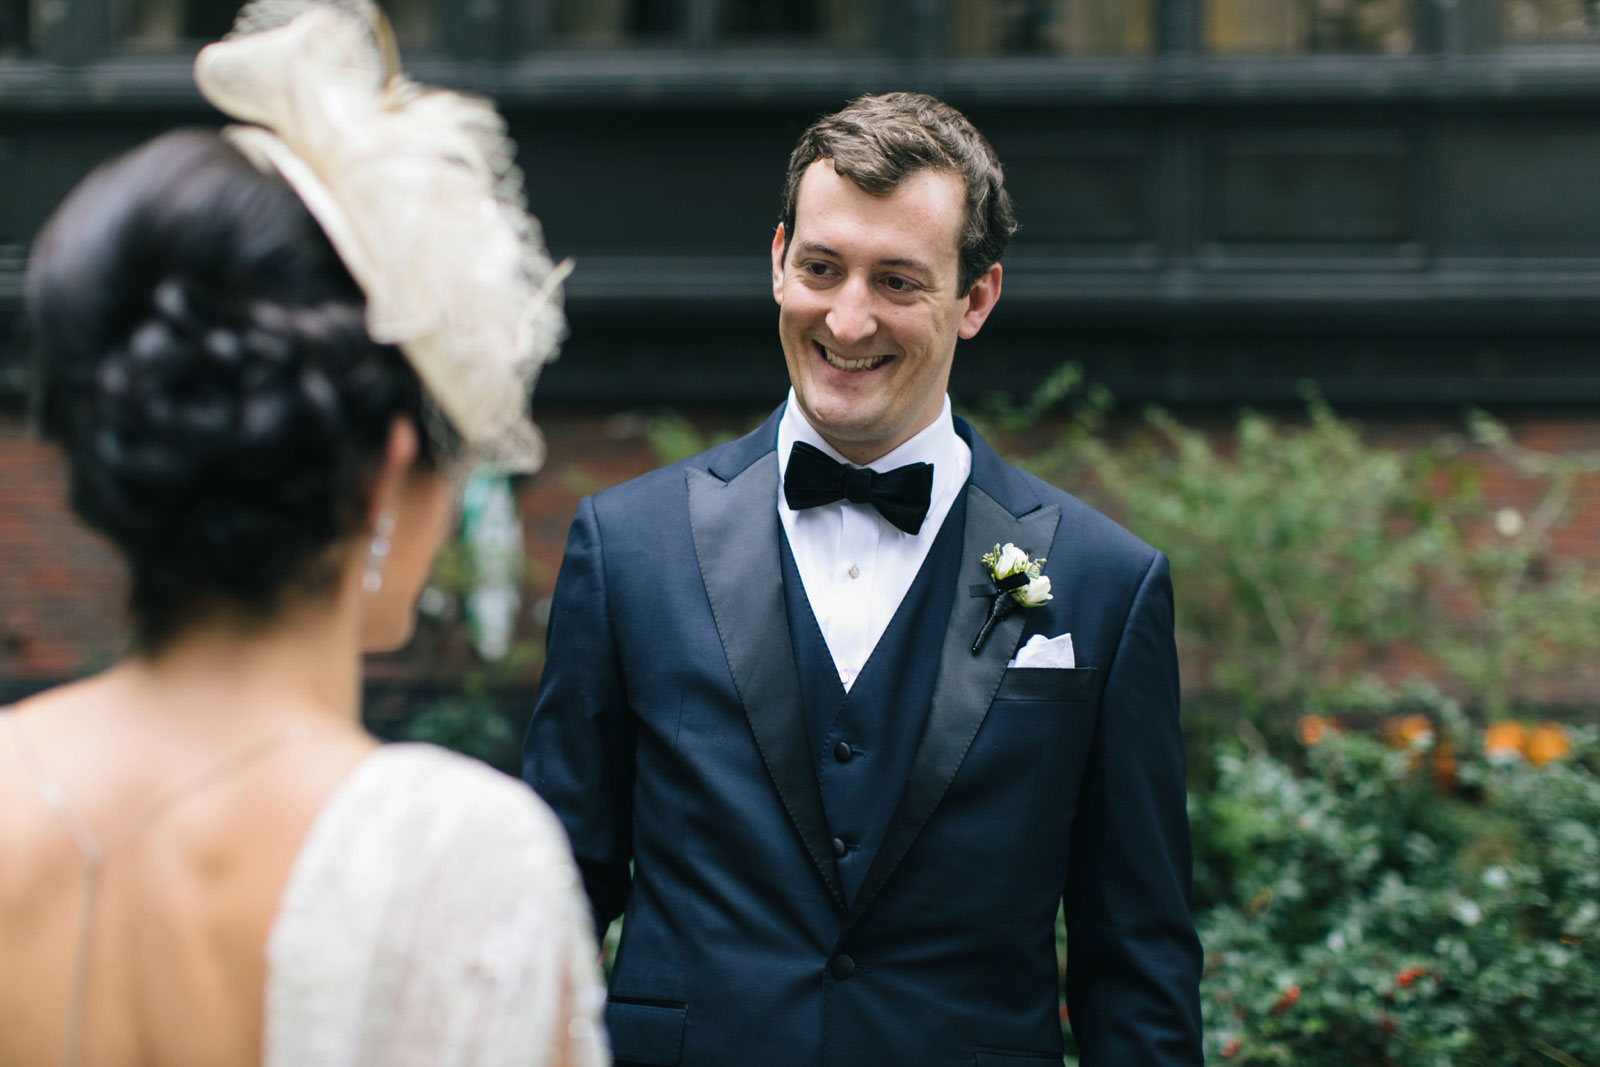 groom smiling as he sees bride for the first time during their first look at old boston city hall